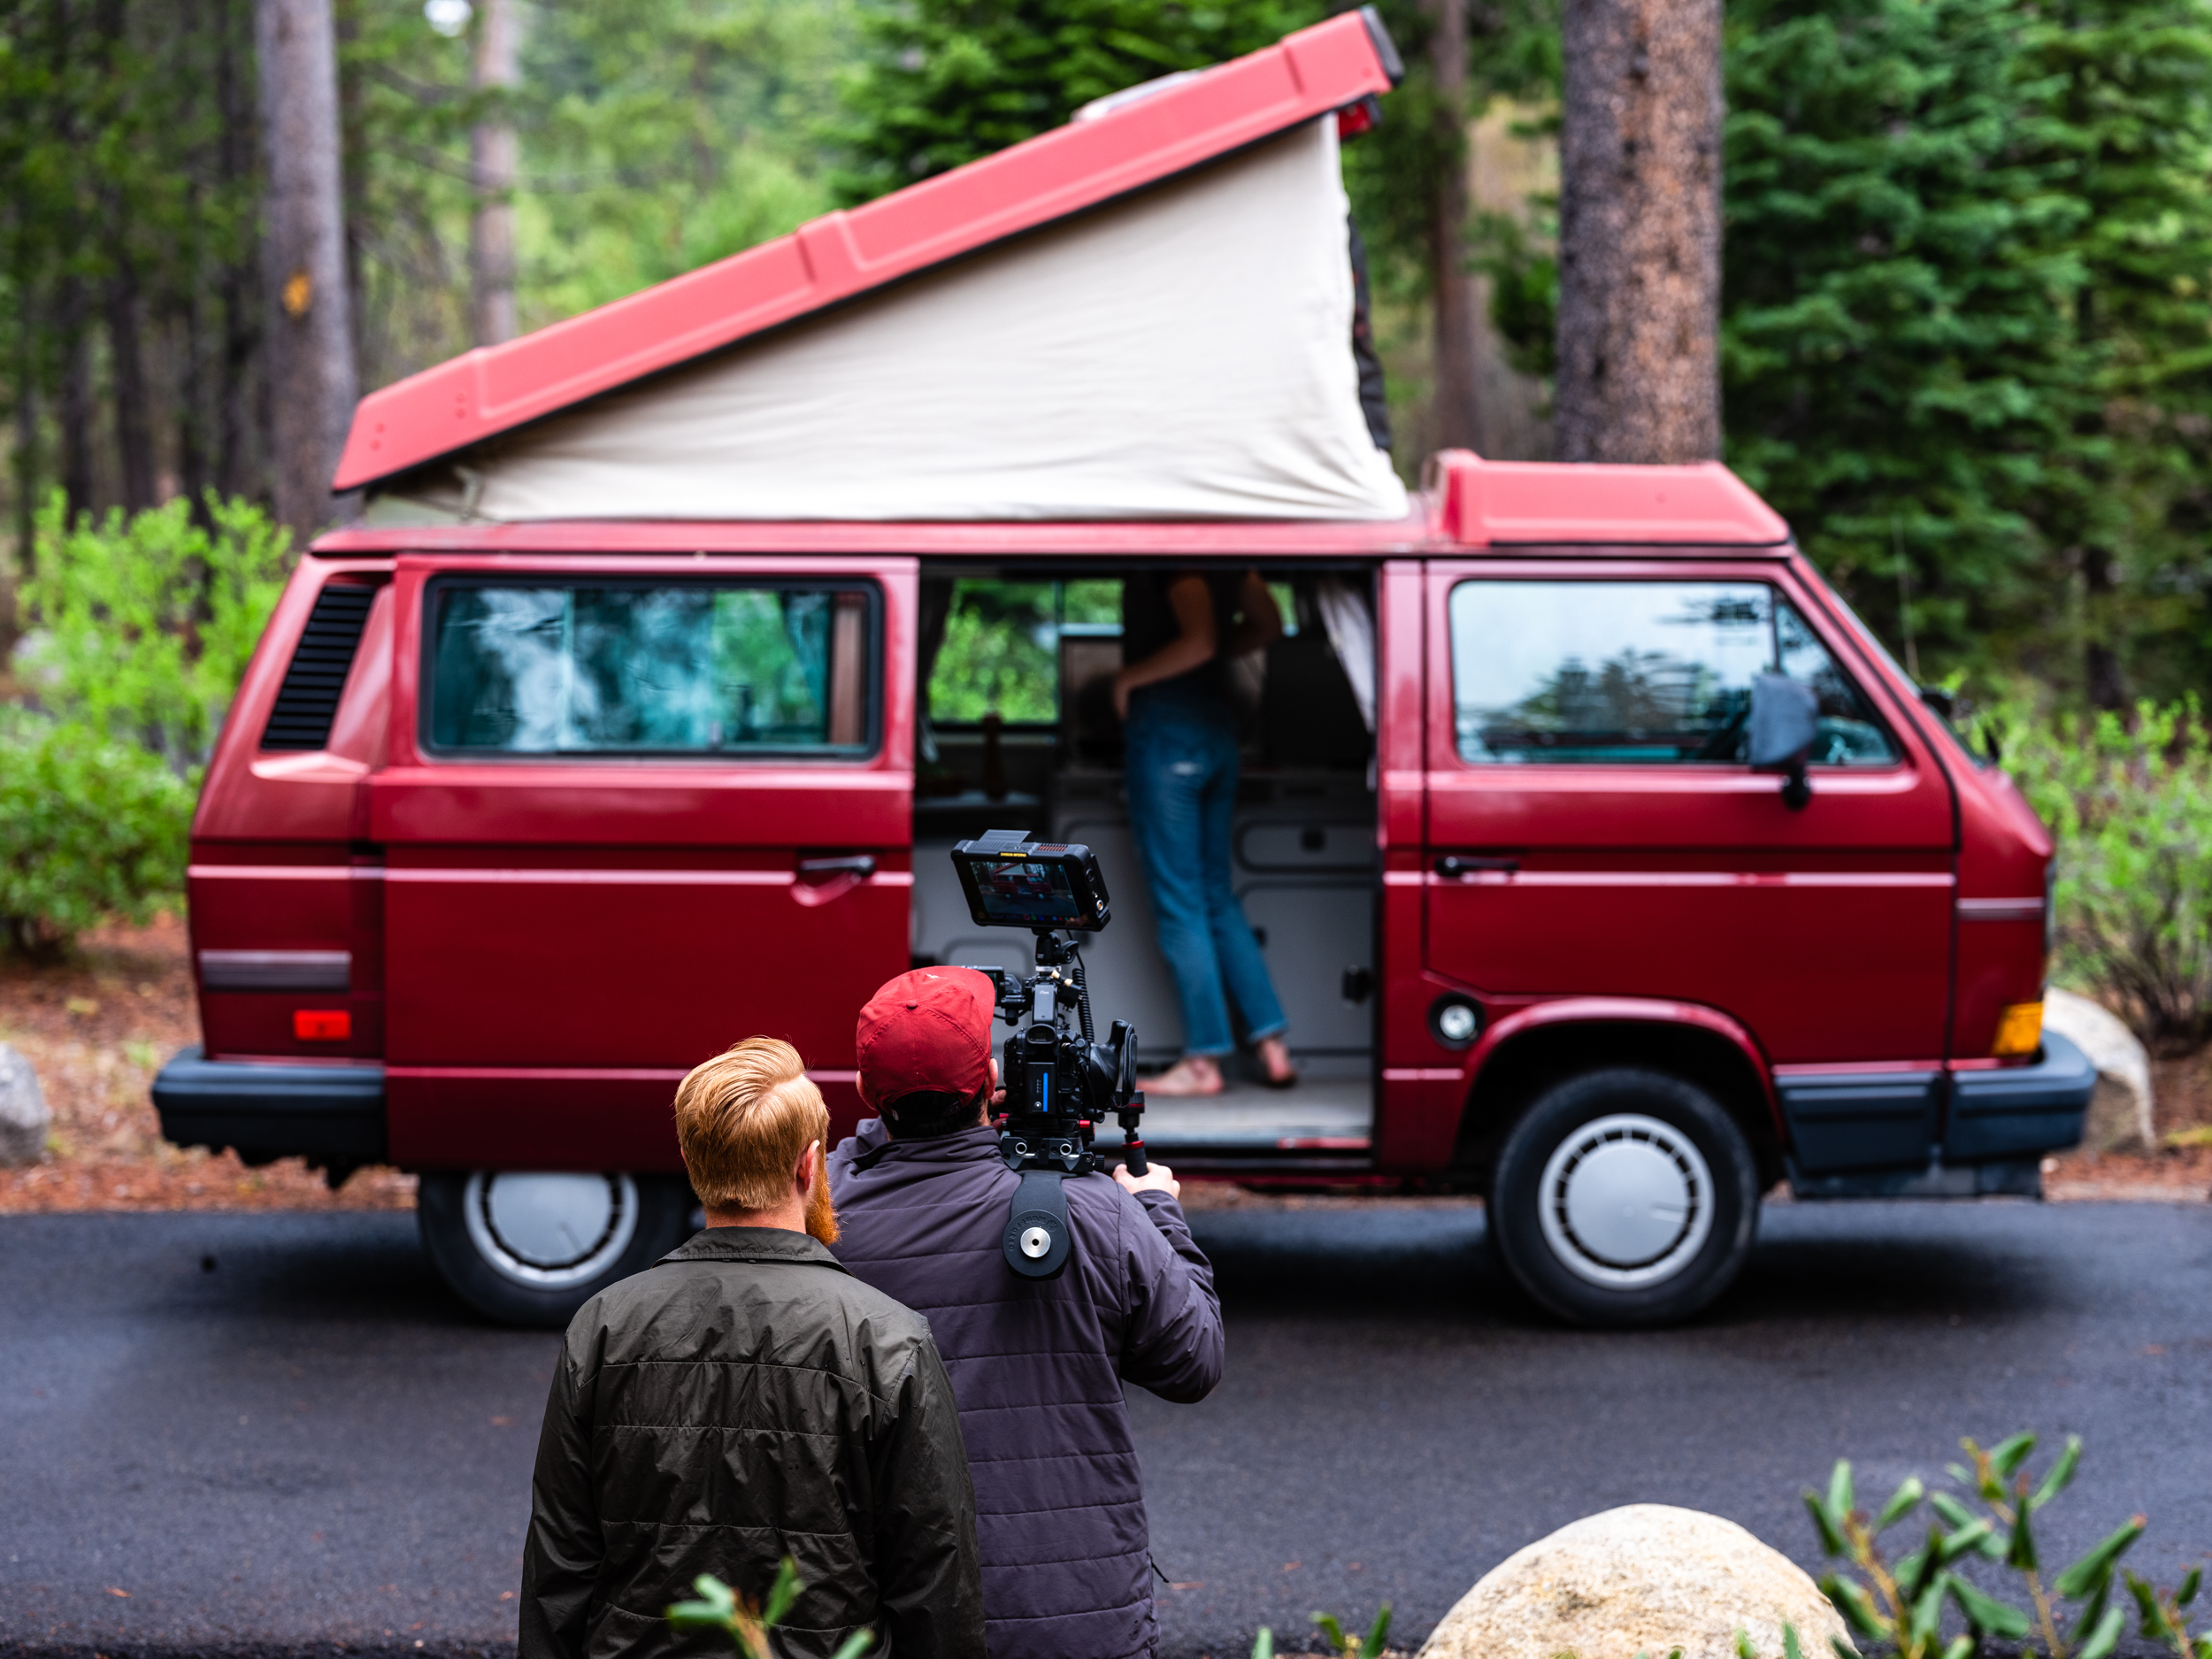 Westfalia_Donner_Making Food_BTS_Paul and Bryce Filming.jpg